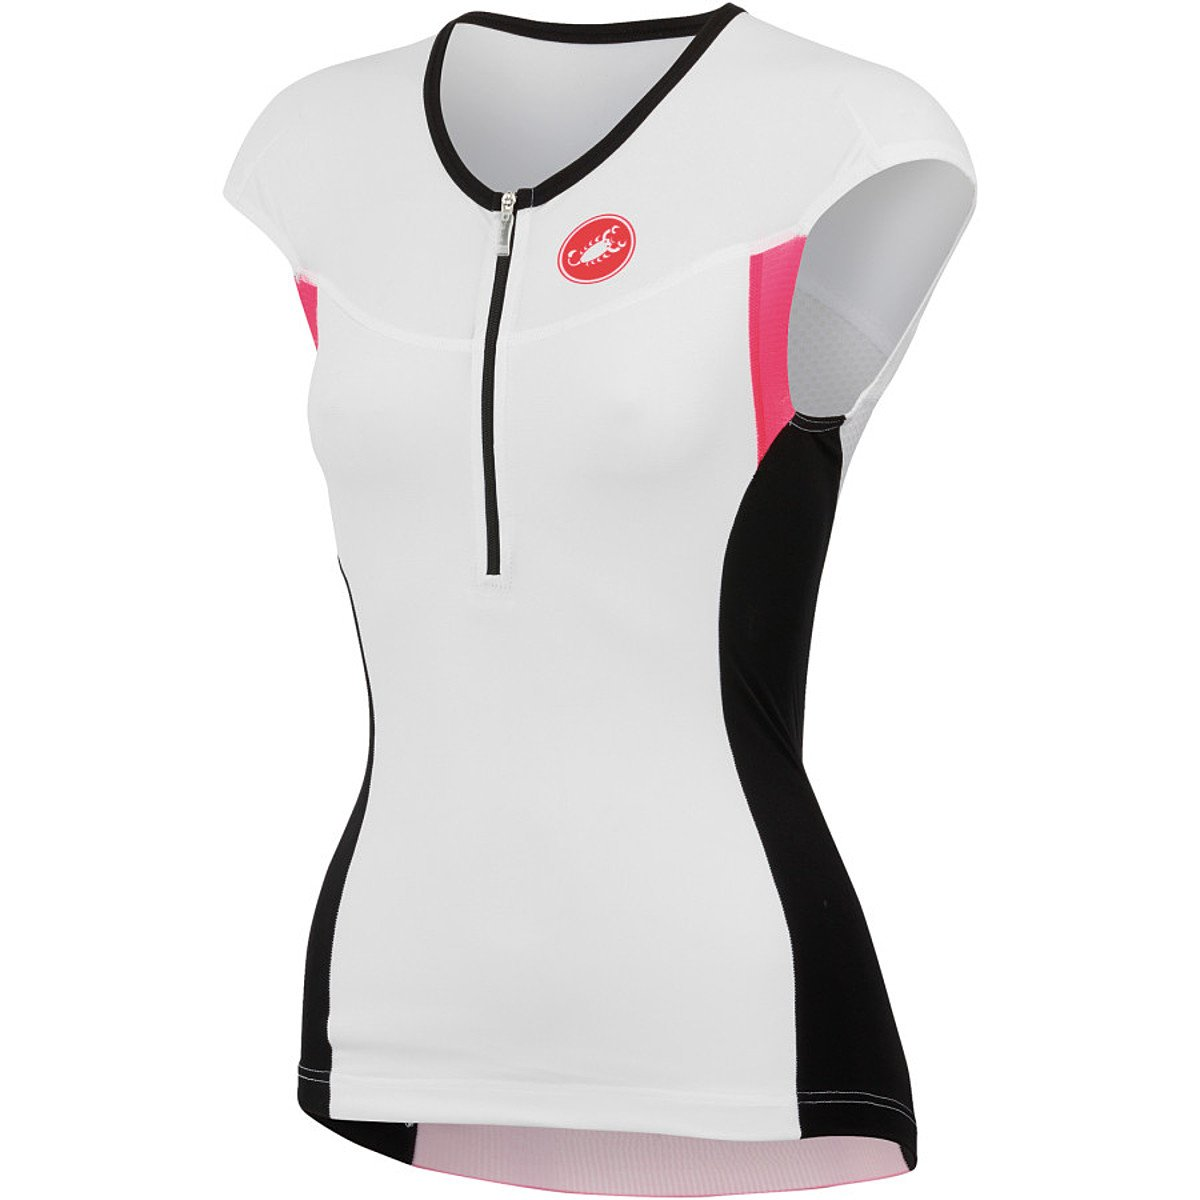 Castelli Free Tri Capsleeve Top - Women's White/Black/Pink, S